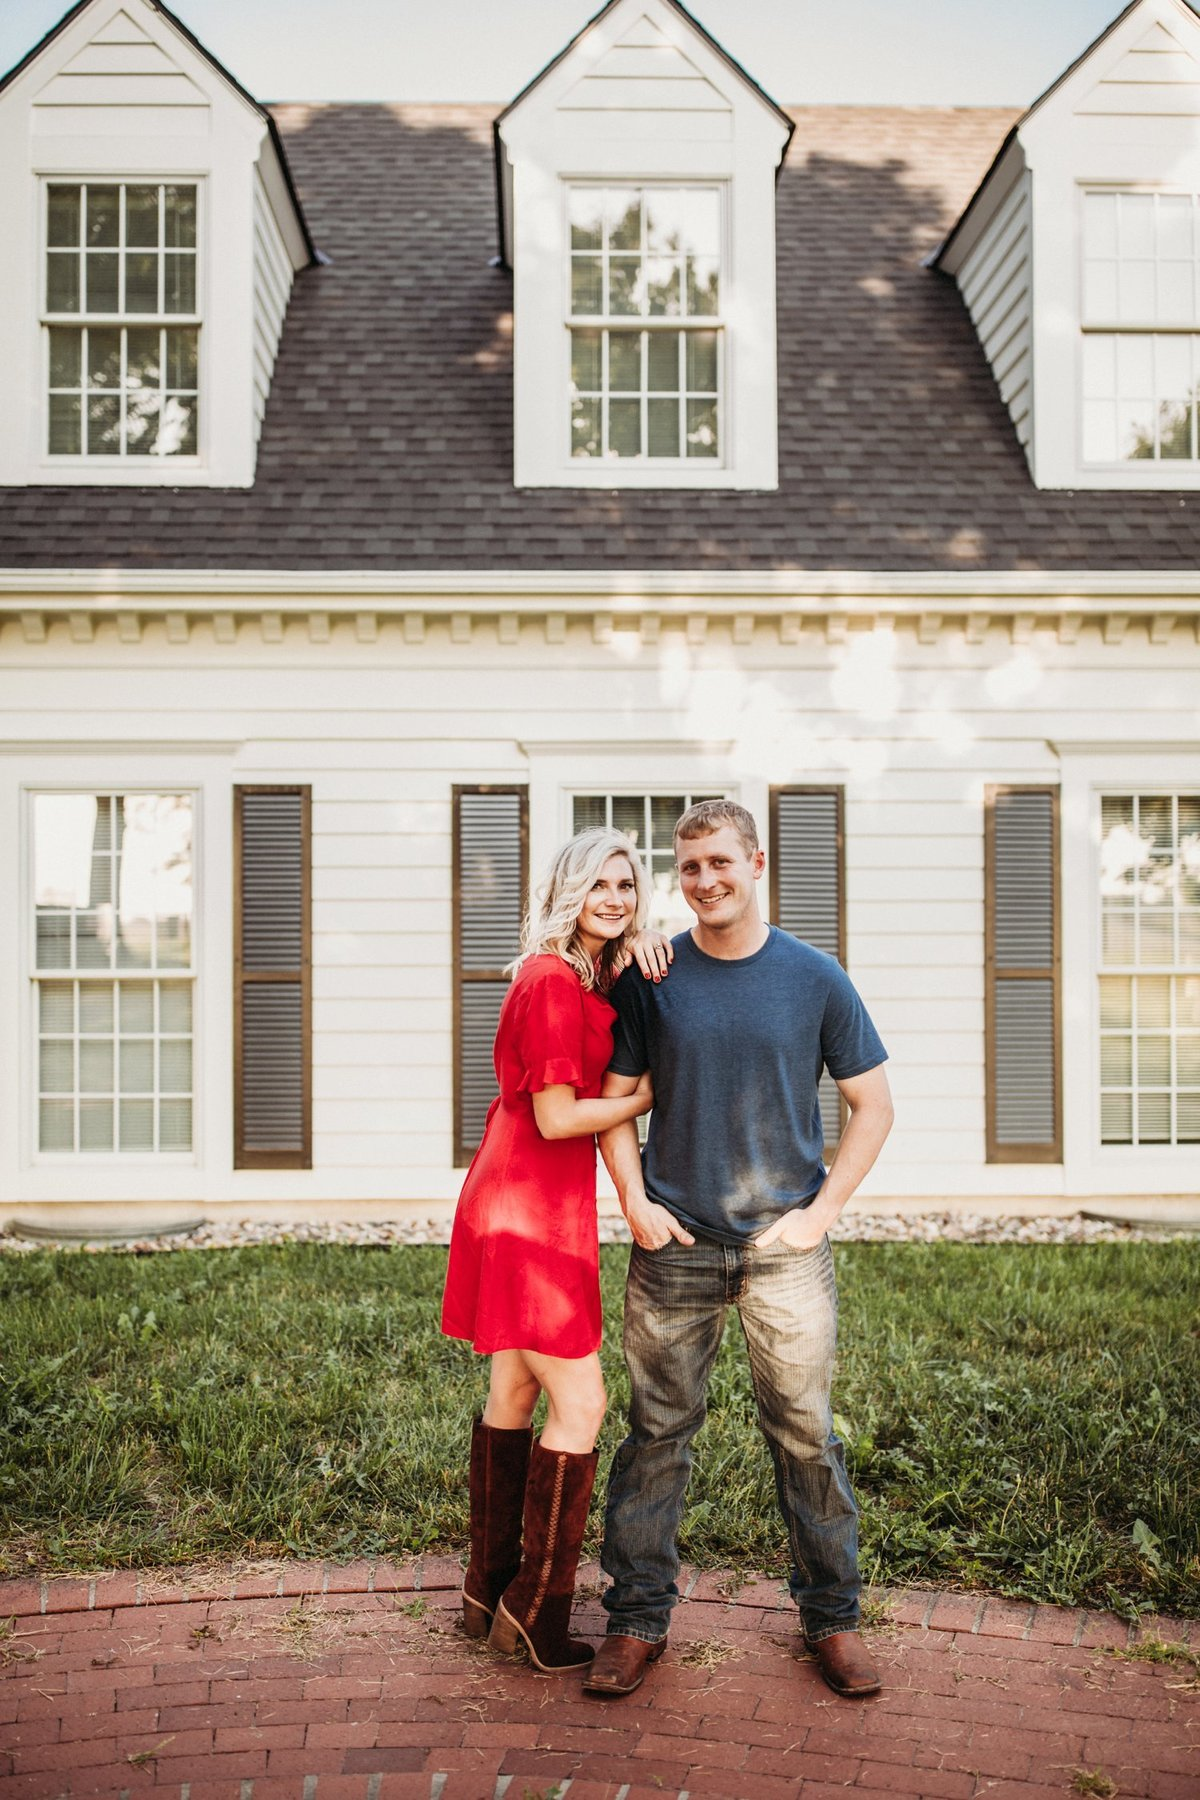 Kansas City Salt Lake City Destination Wedding Photographer_0381